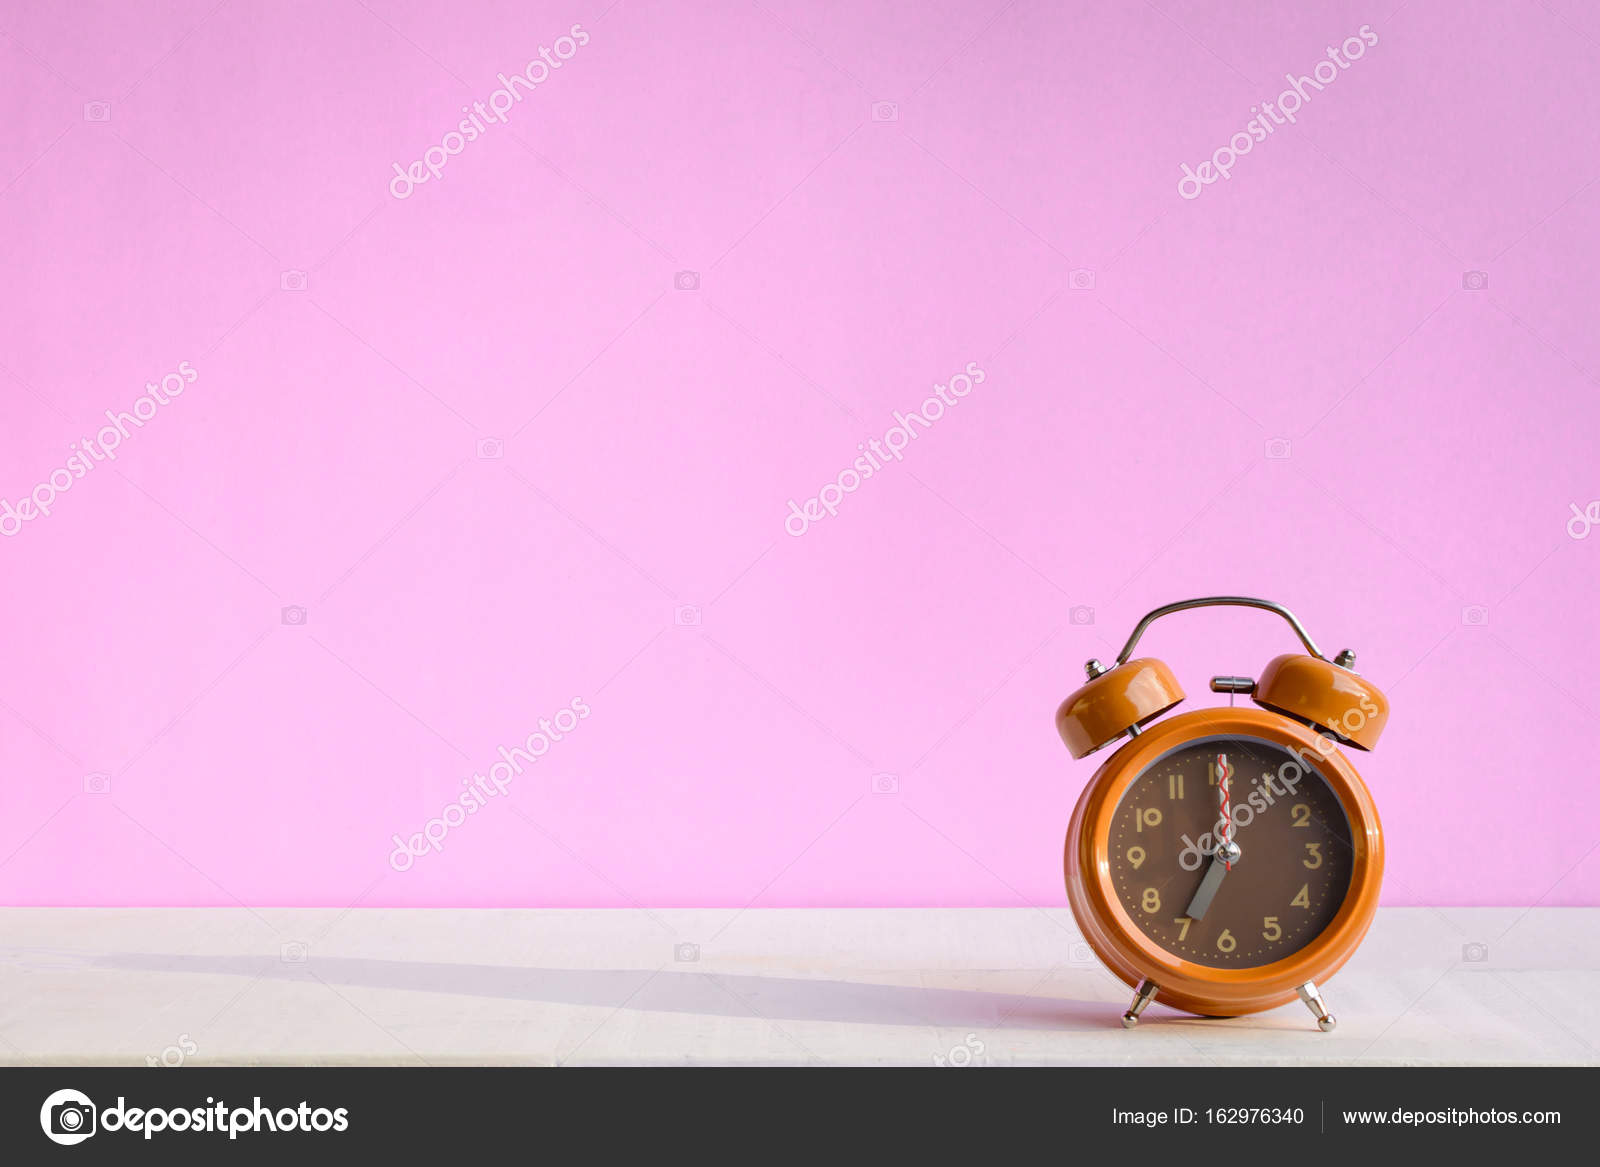 White Desk Clock With Pink Sweet Wall Stock Photo